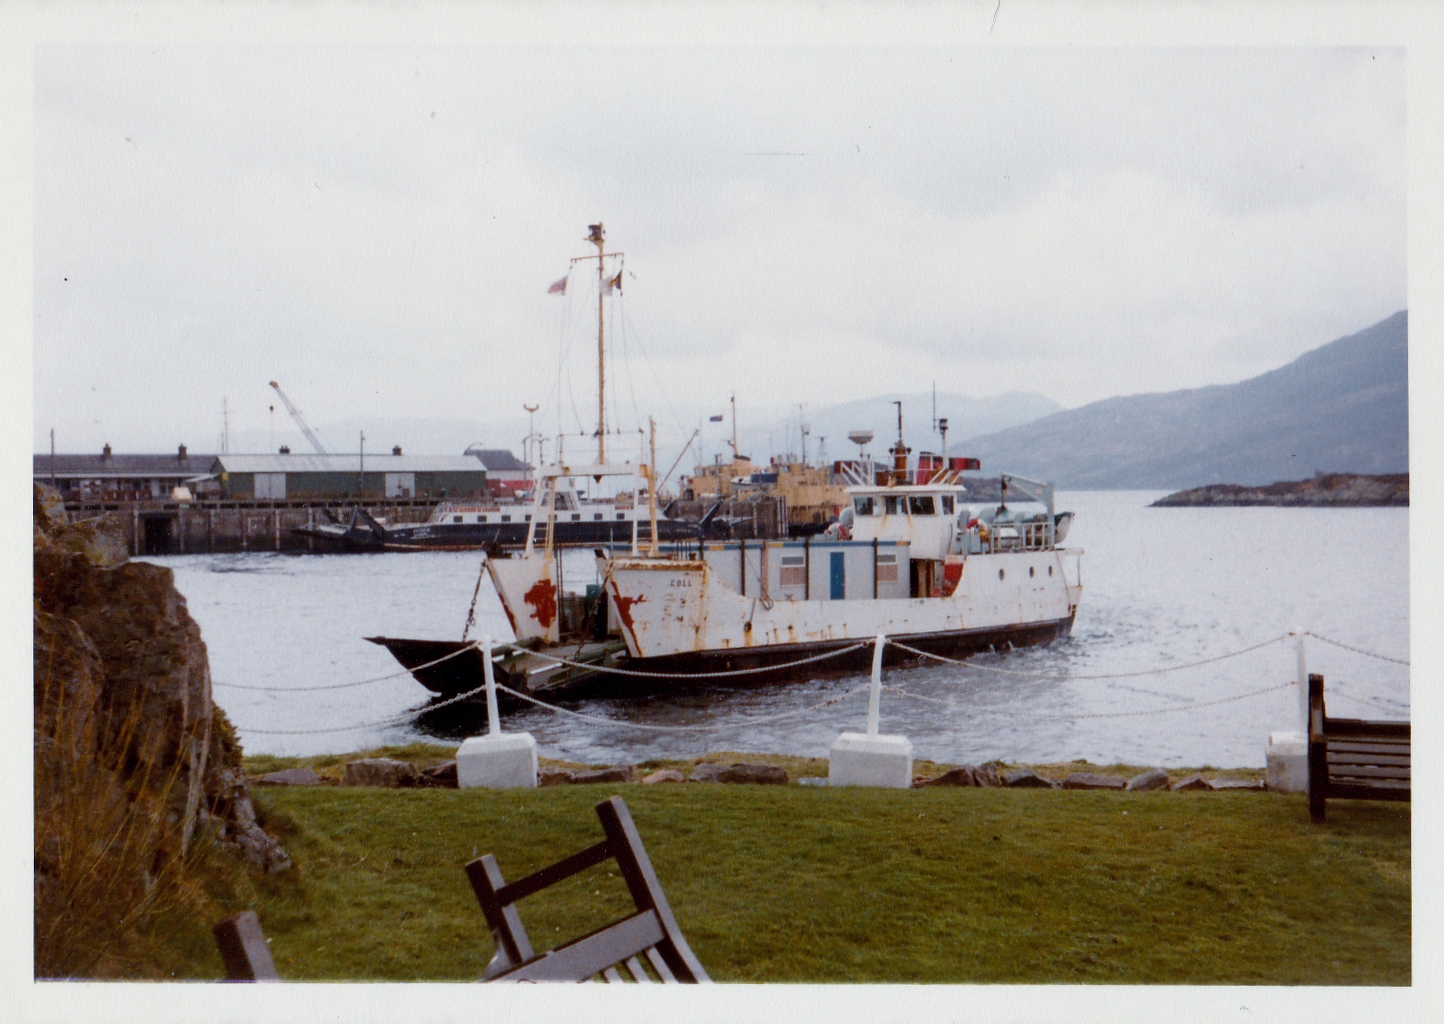 Coll at Kyle of Lochalsh (Jim Aikman Smith)